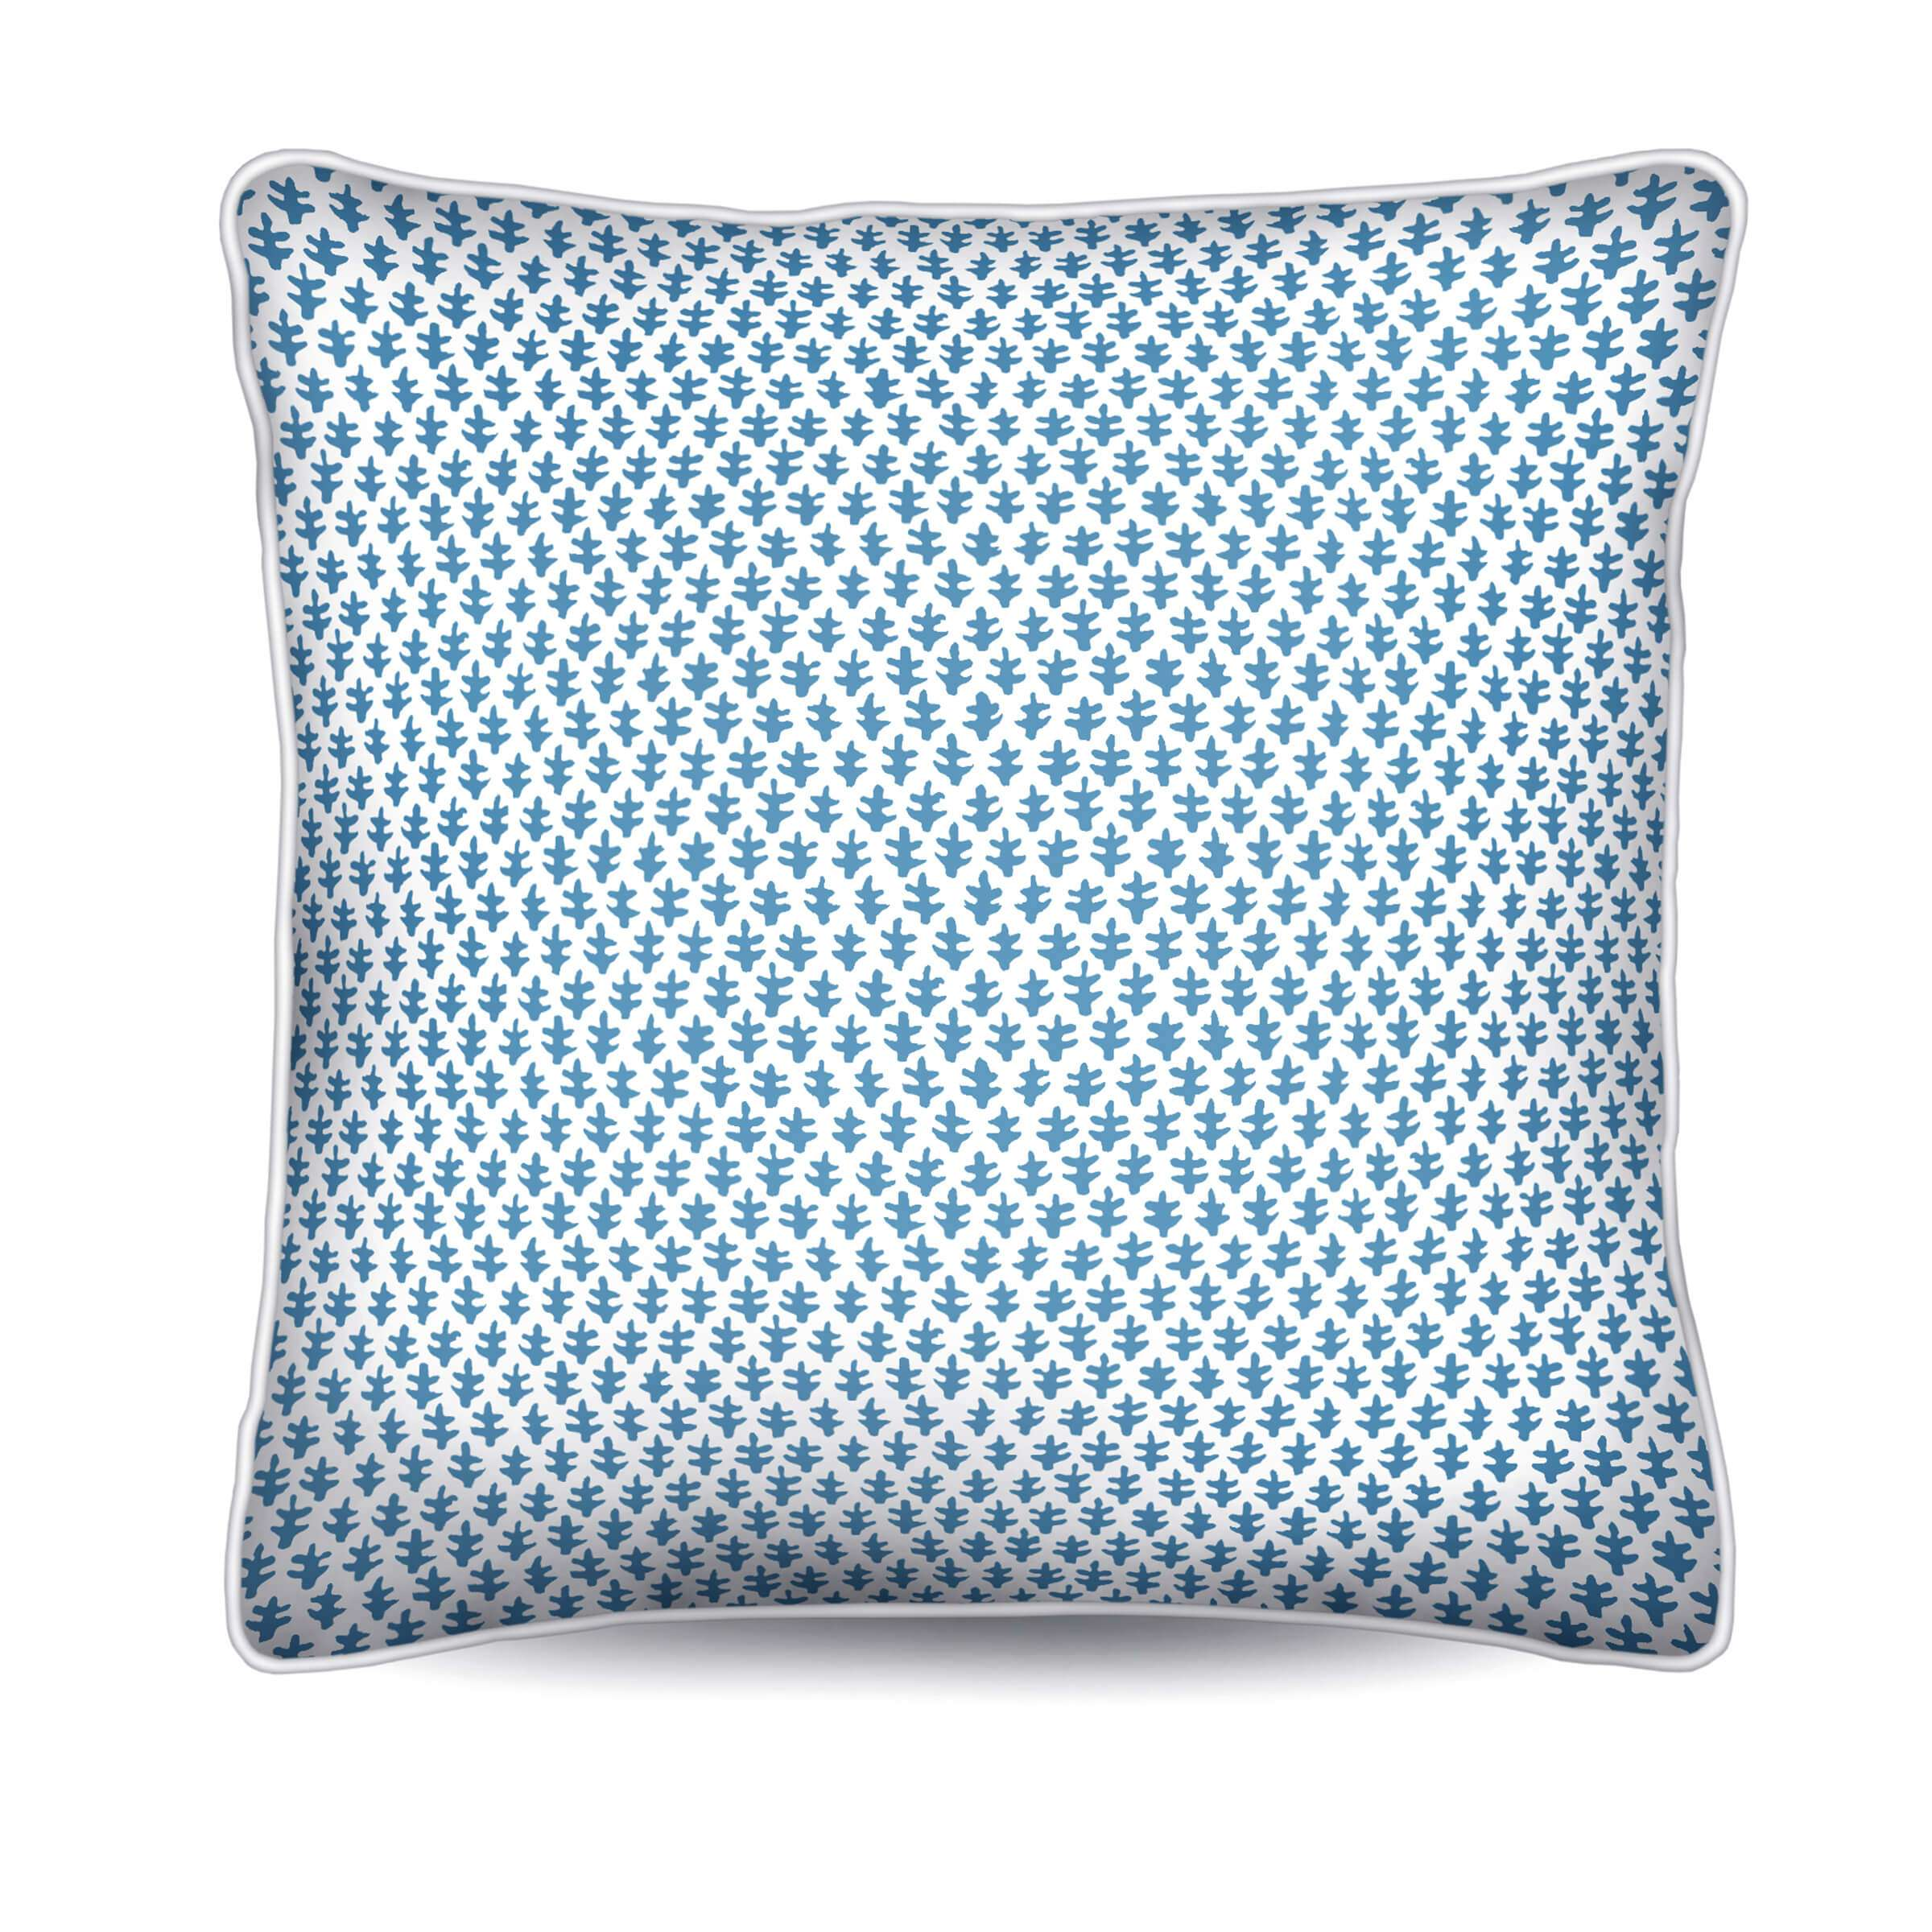 blue and white pillow, batik, foulard